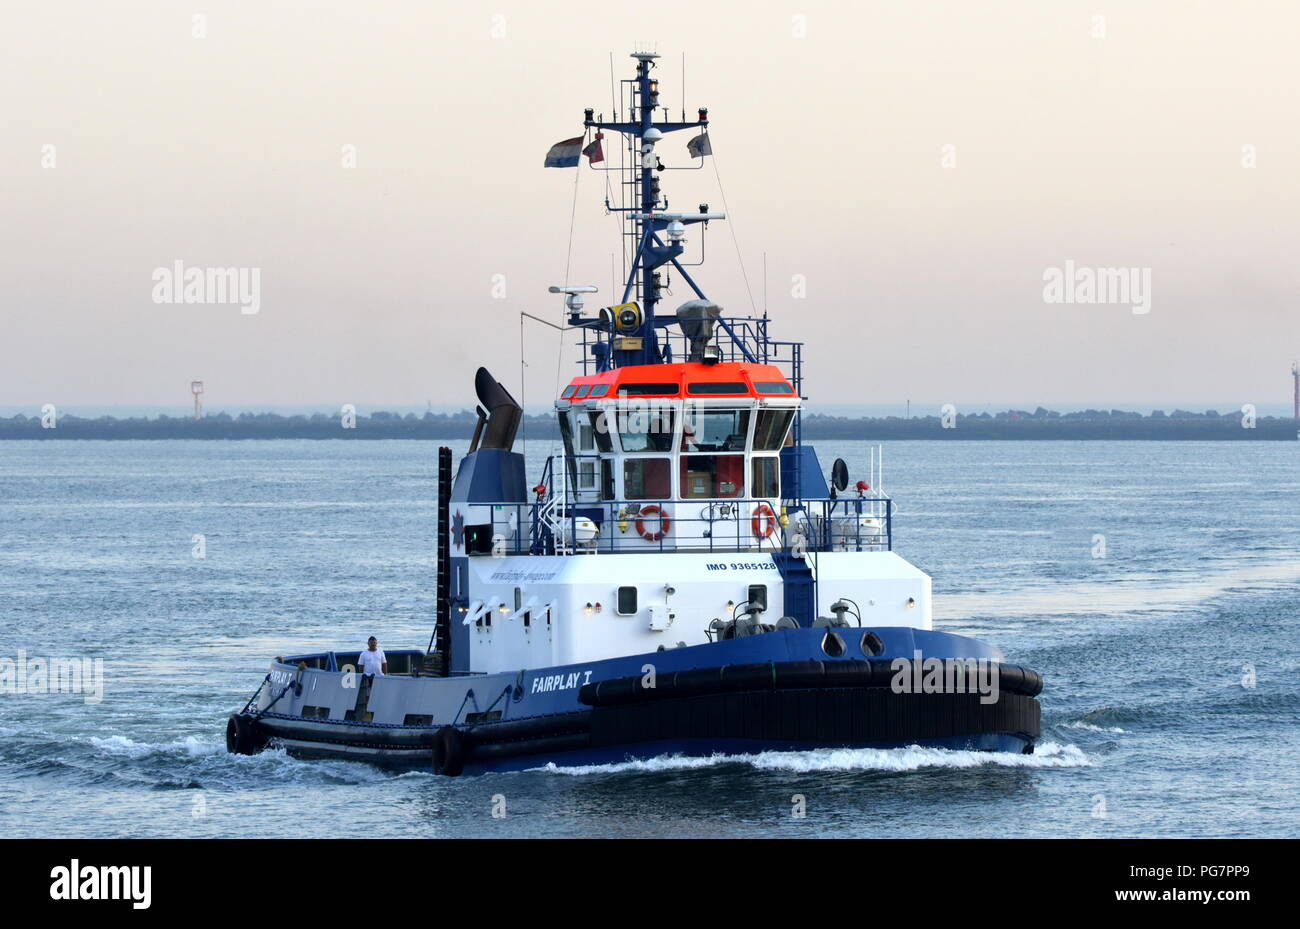 The harbor tug Fairplay I operates on 27 July 2018 in the port of Rotterdam. - Stock Image